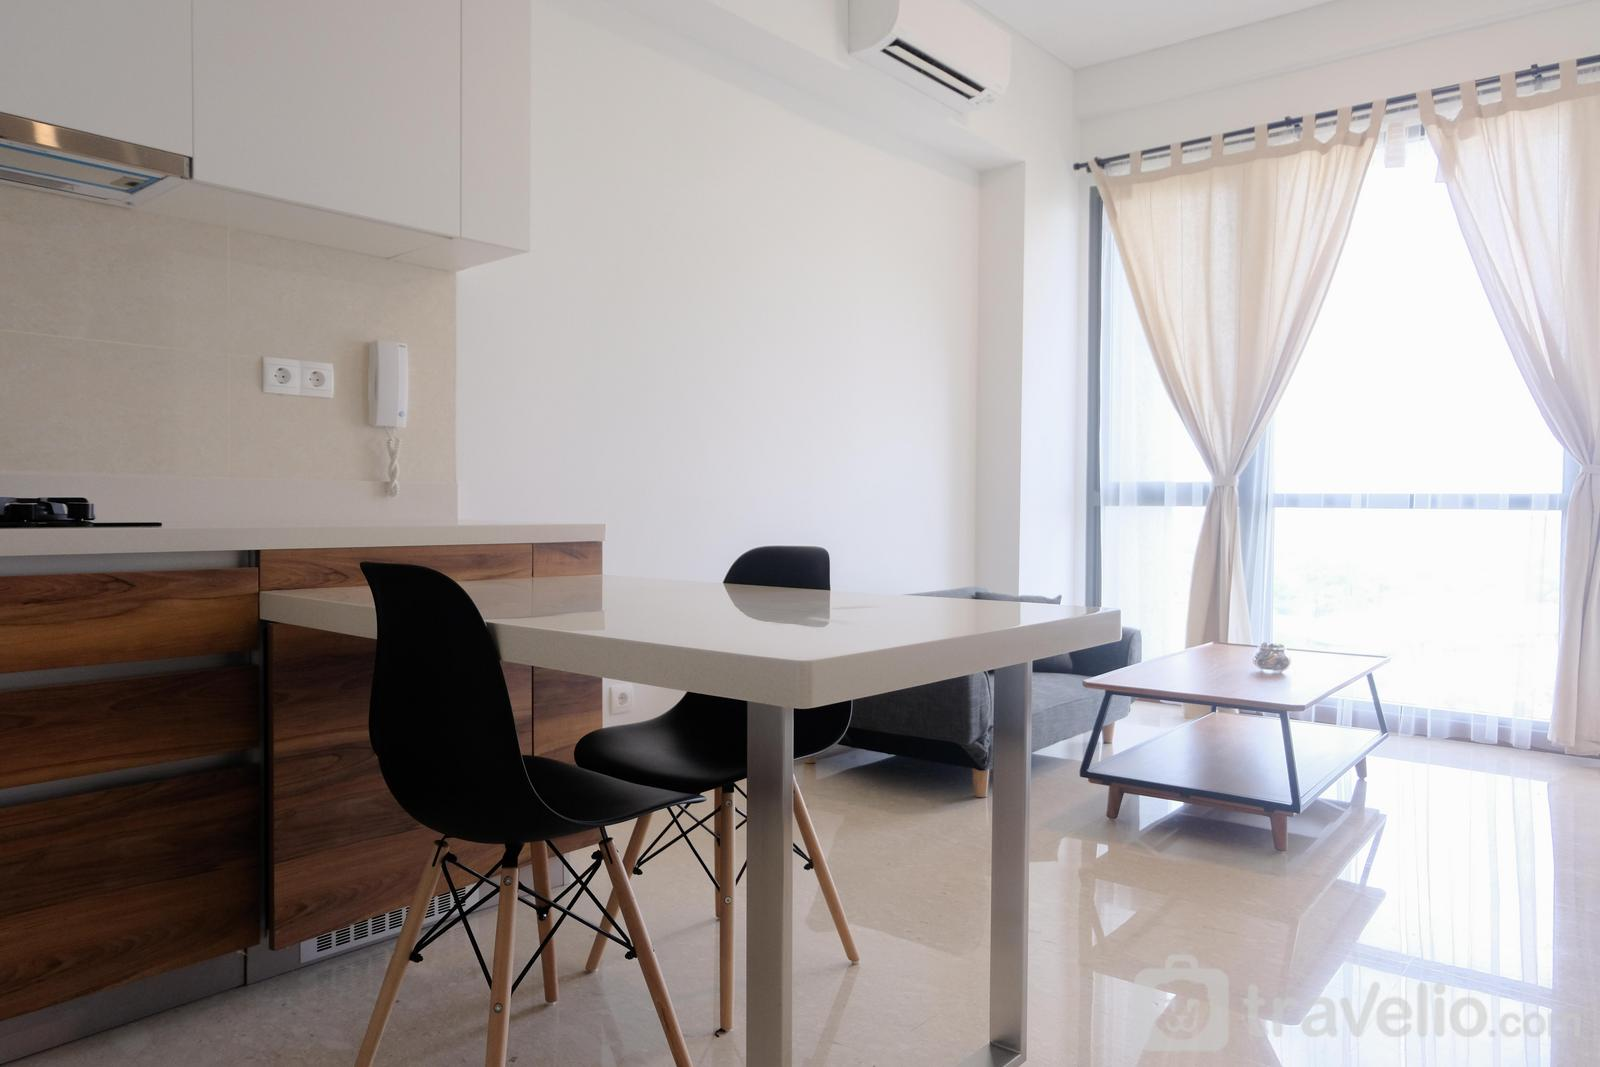 Marigold Nava Park Apartment - Luxurious 1BR at Marigold Nava Park Apartment By Travelio